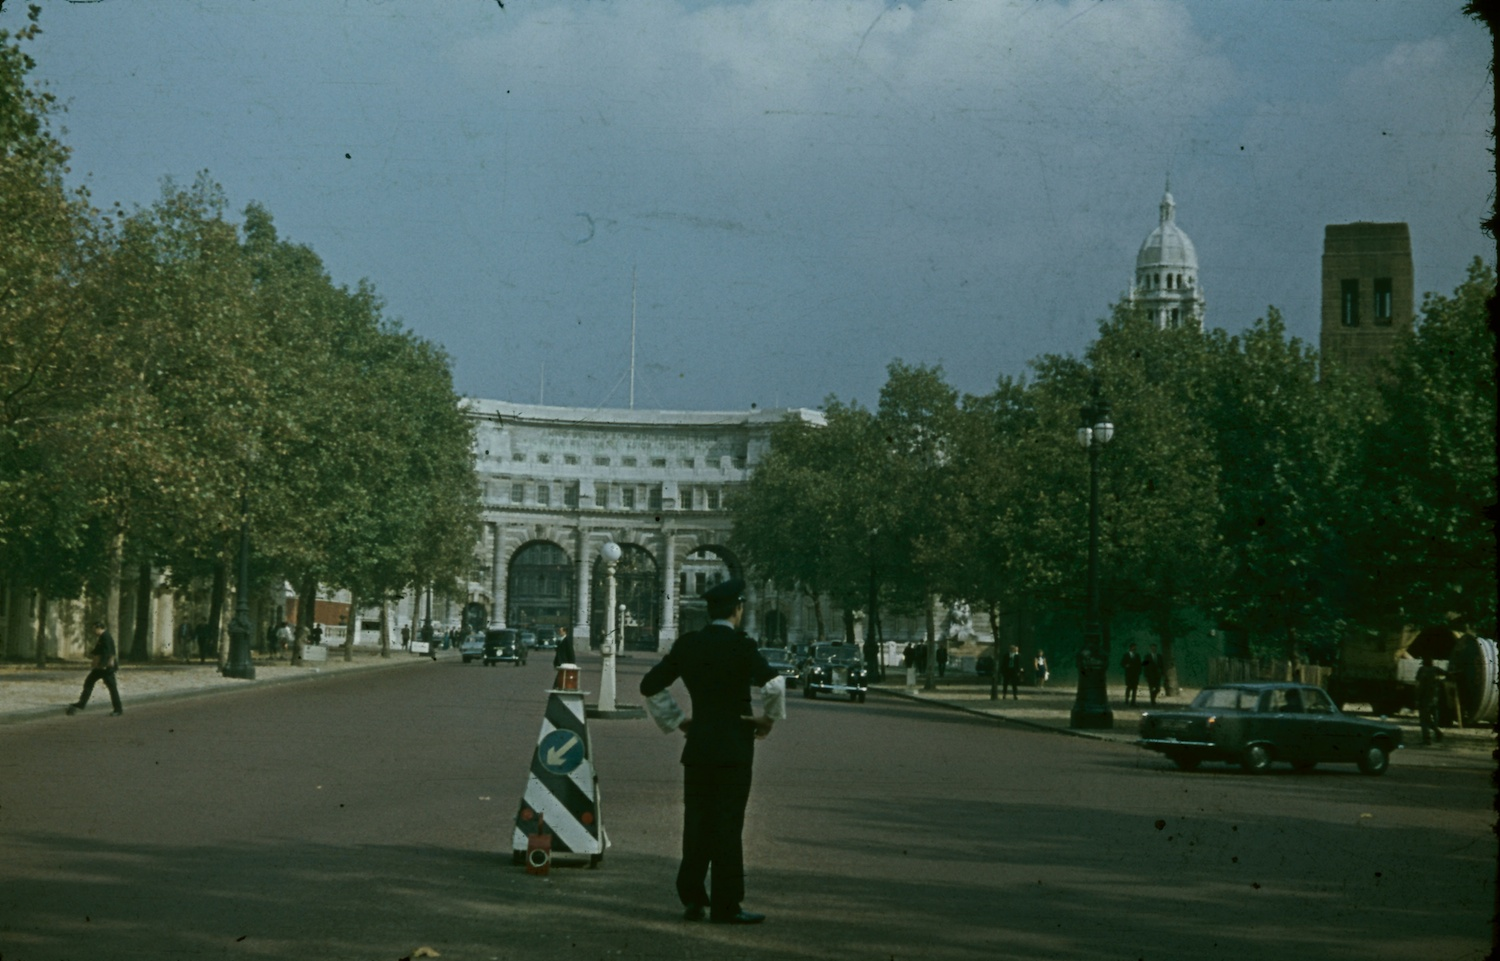 London Admiralty Arch 1970